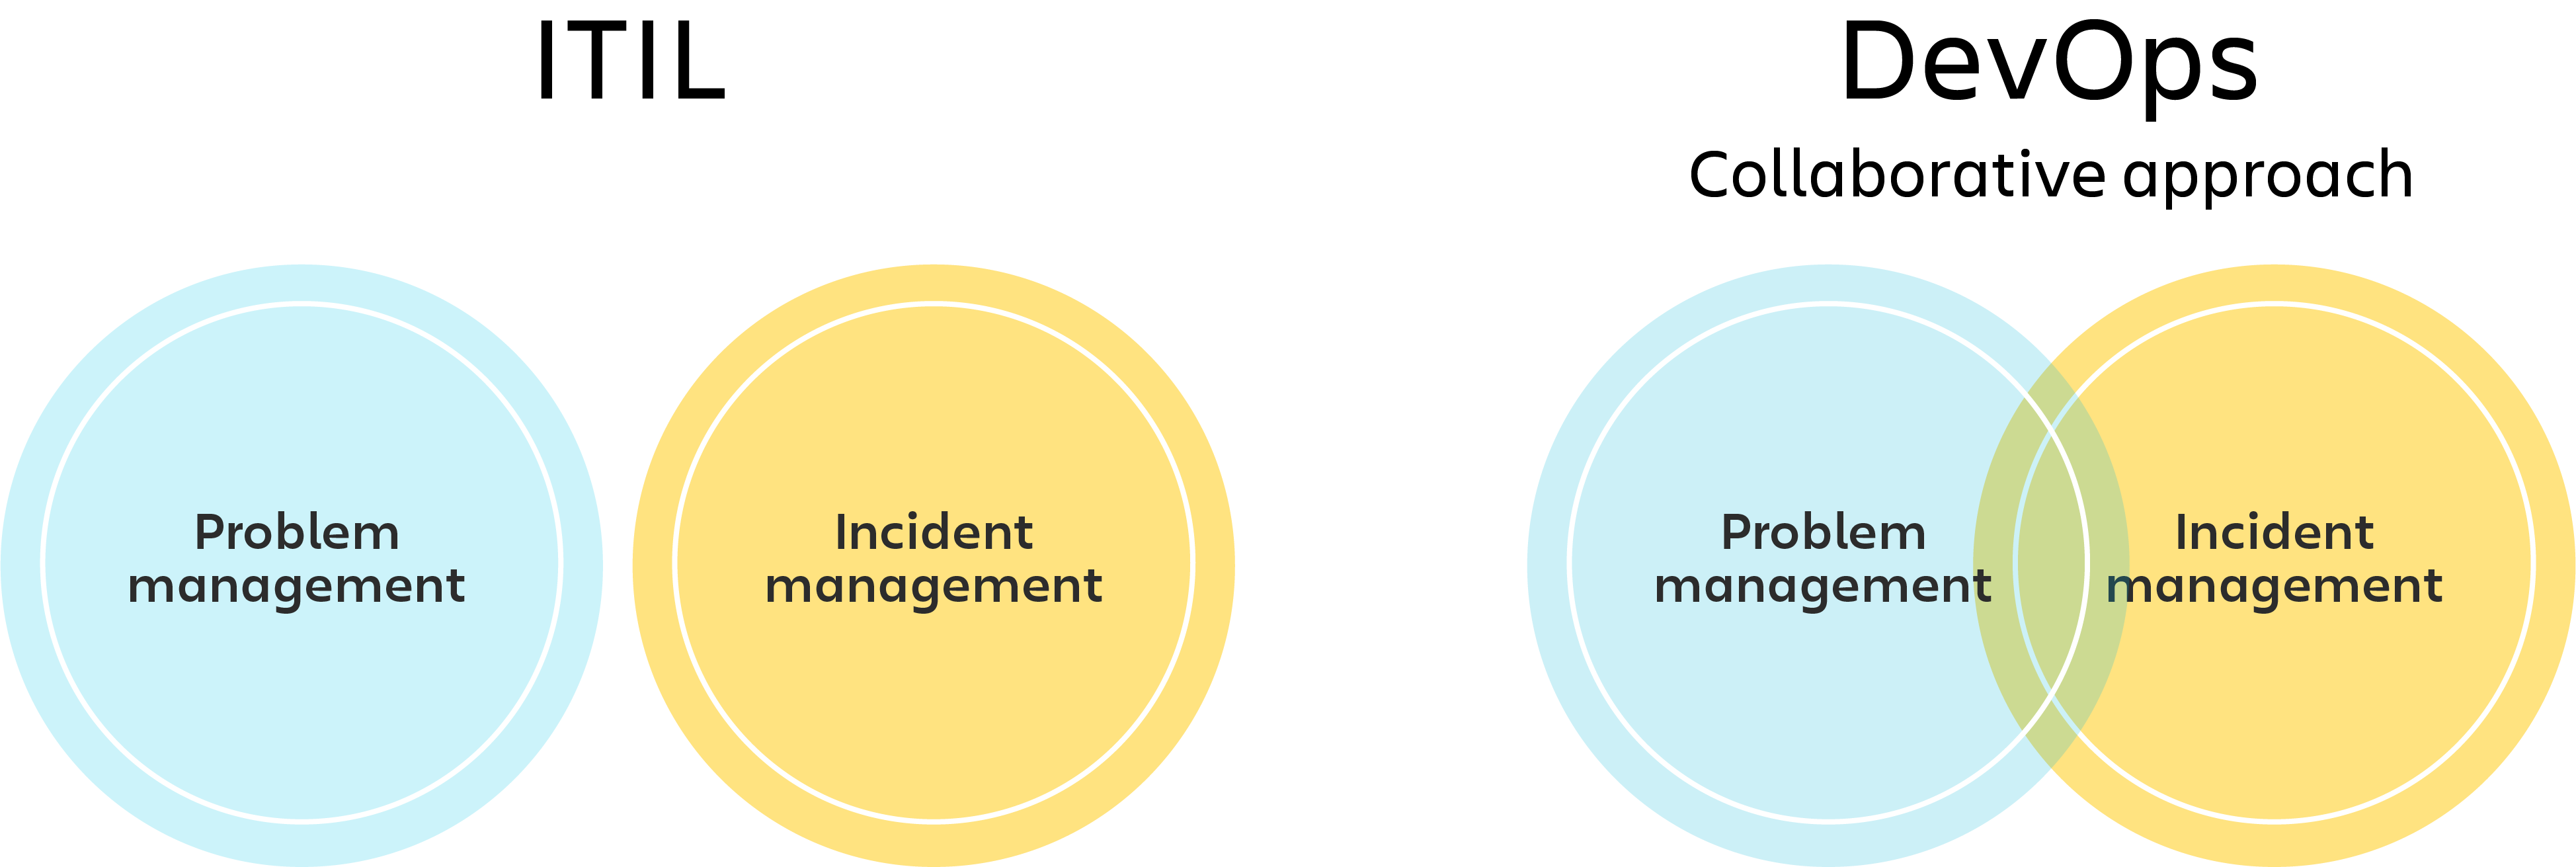 ITIL diagram with separate problem and incident management circles and DevOps diagram with venn diagram of problem and incident management